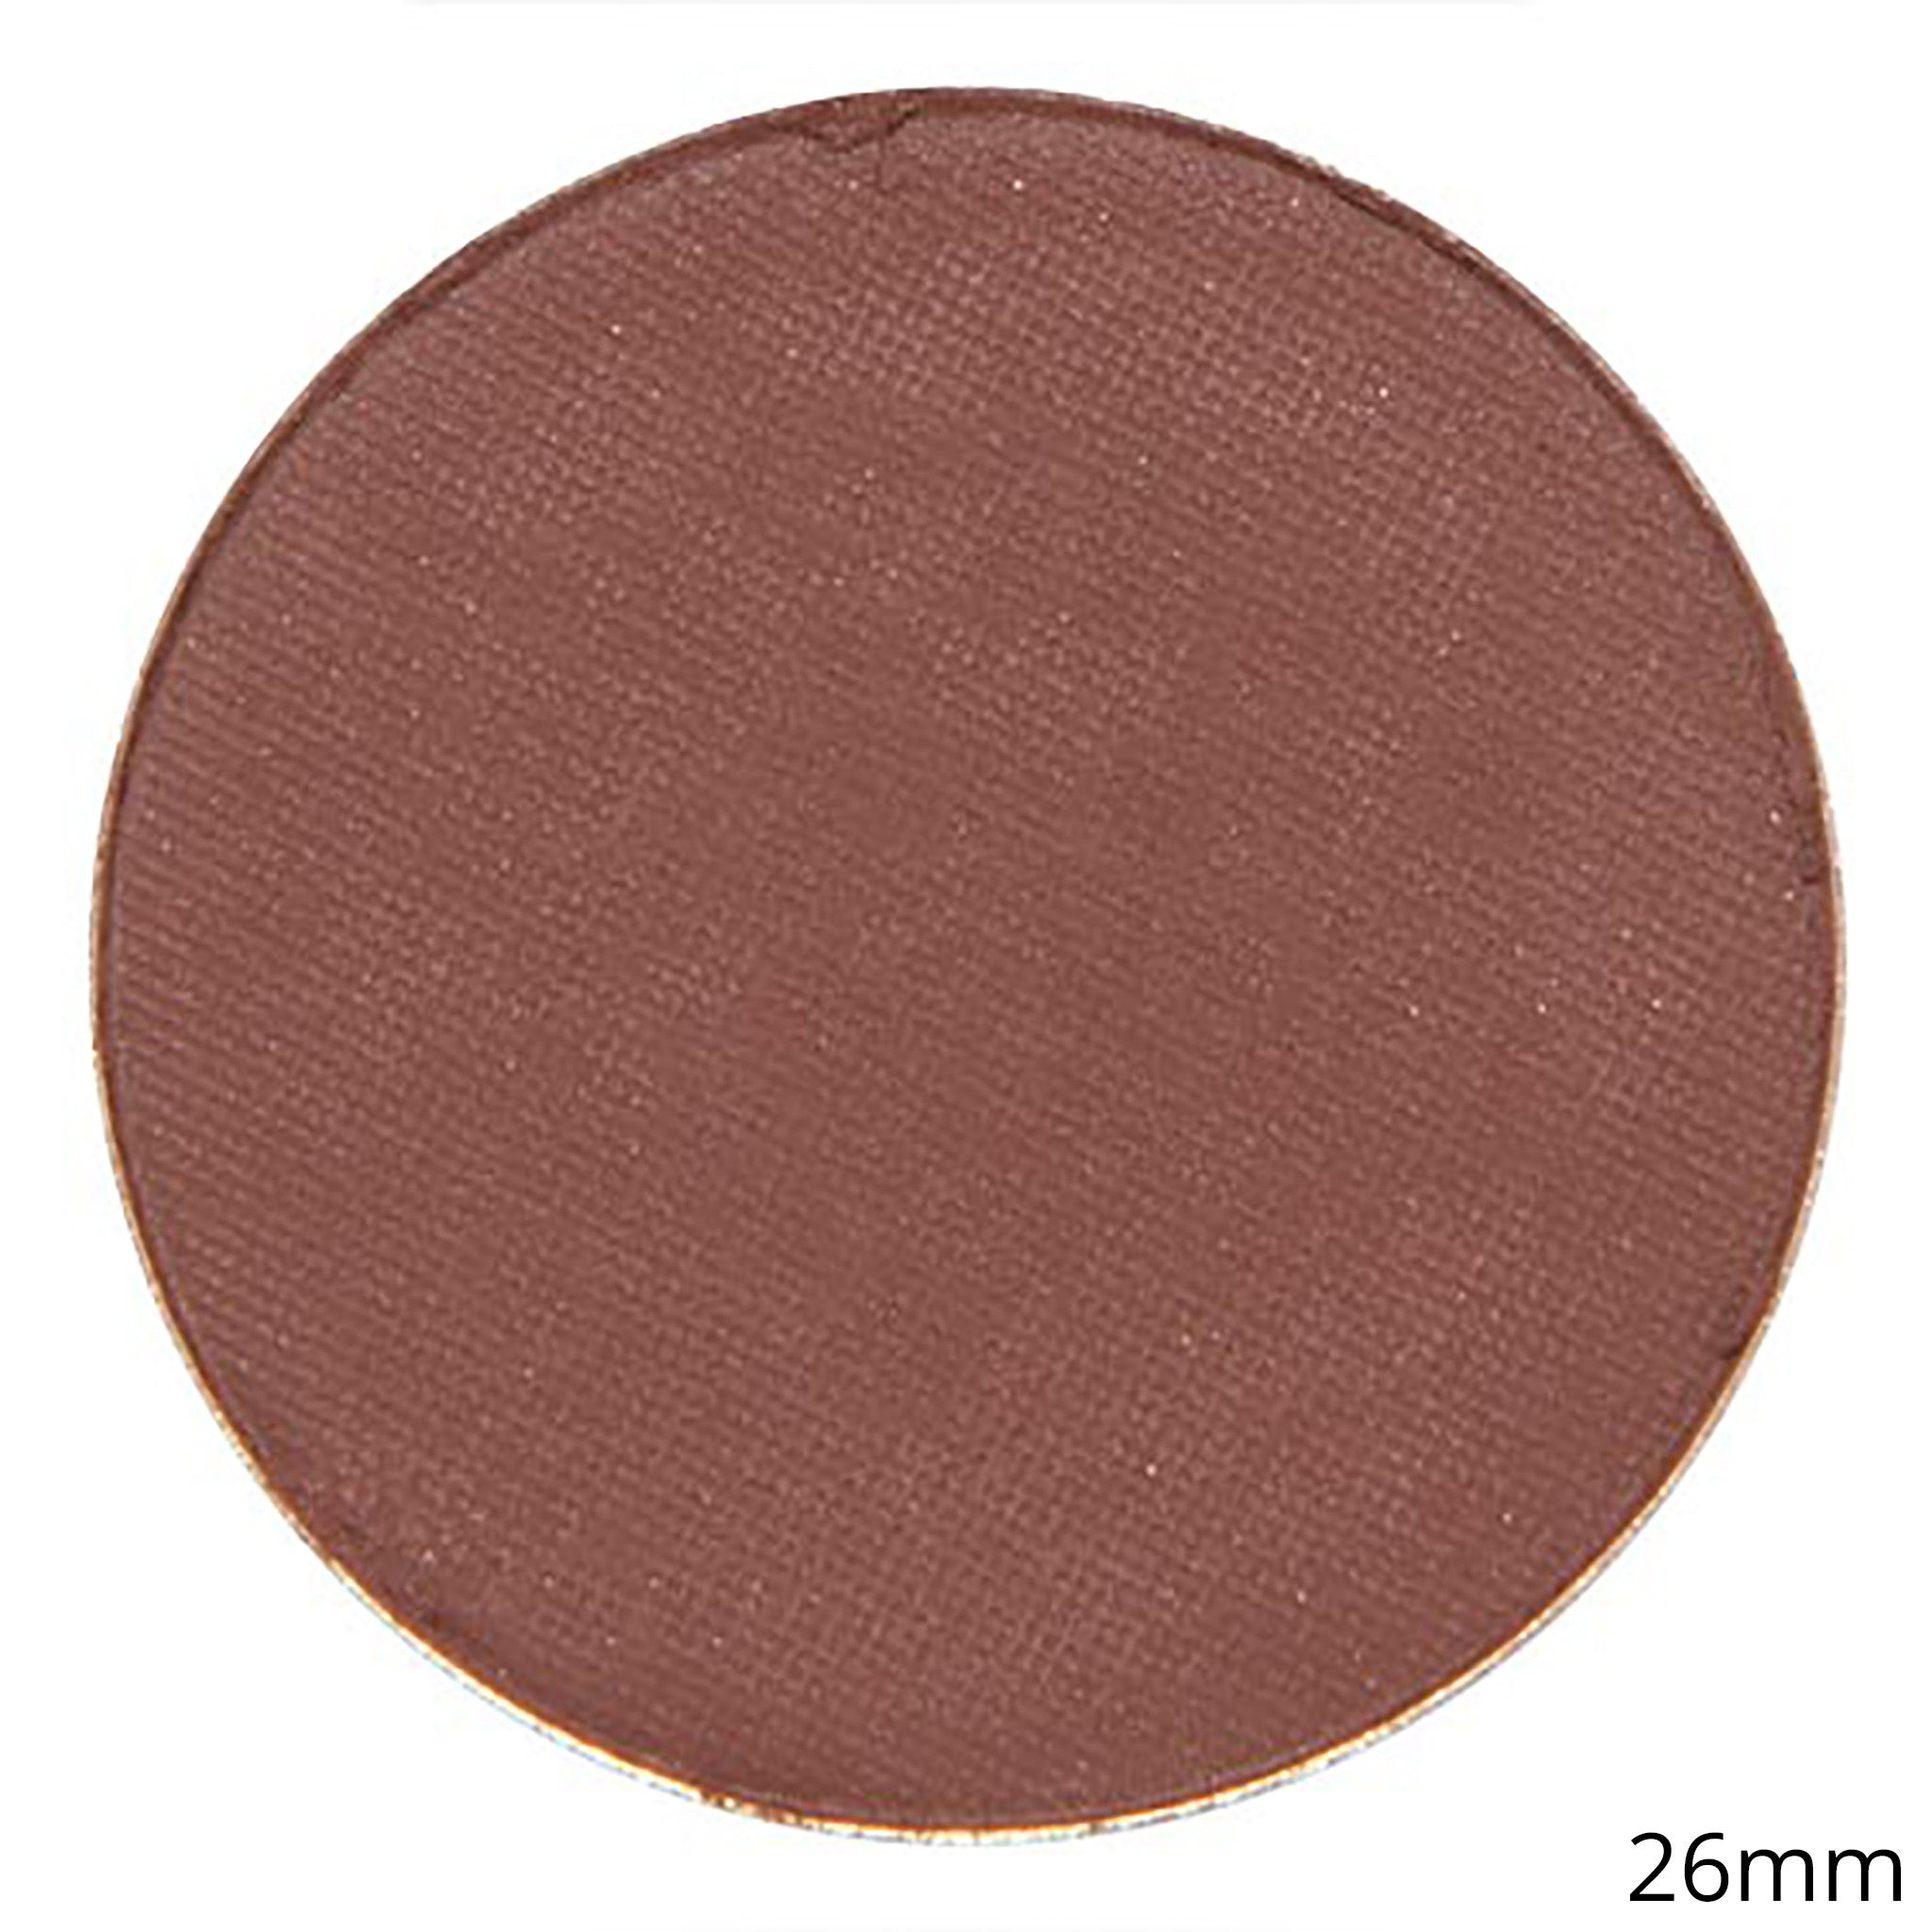 Single Eyeshadow - Chocolatier Hot Pot by Coastal Scents